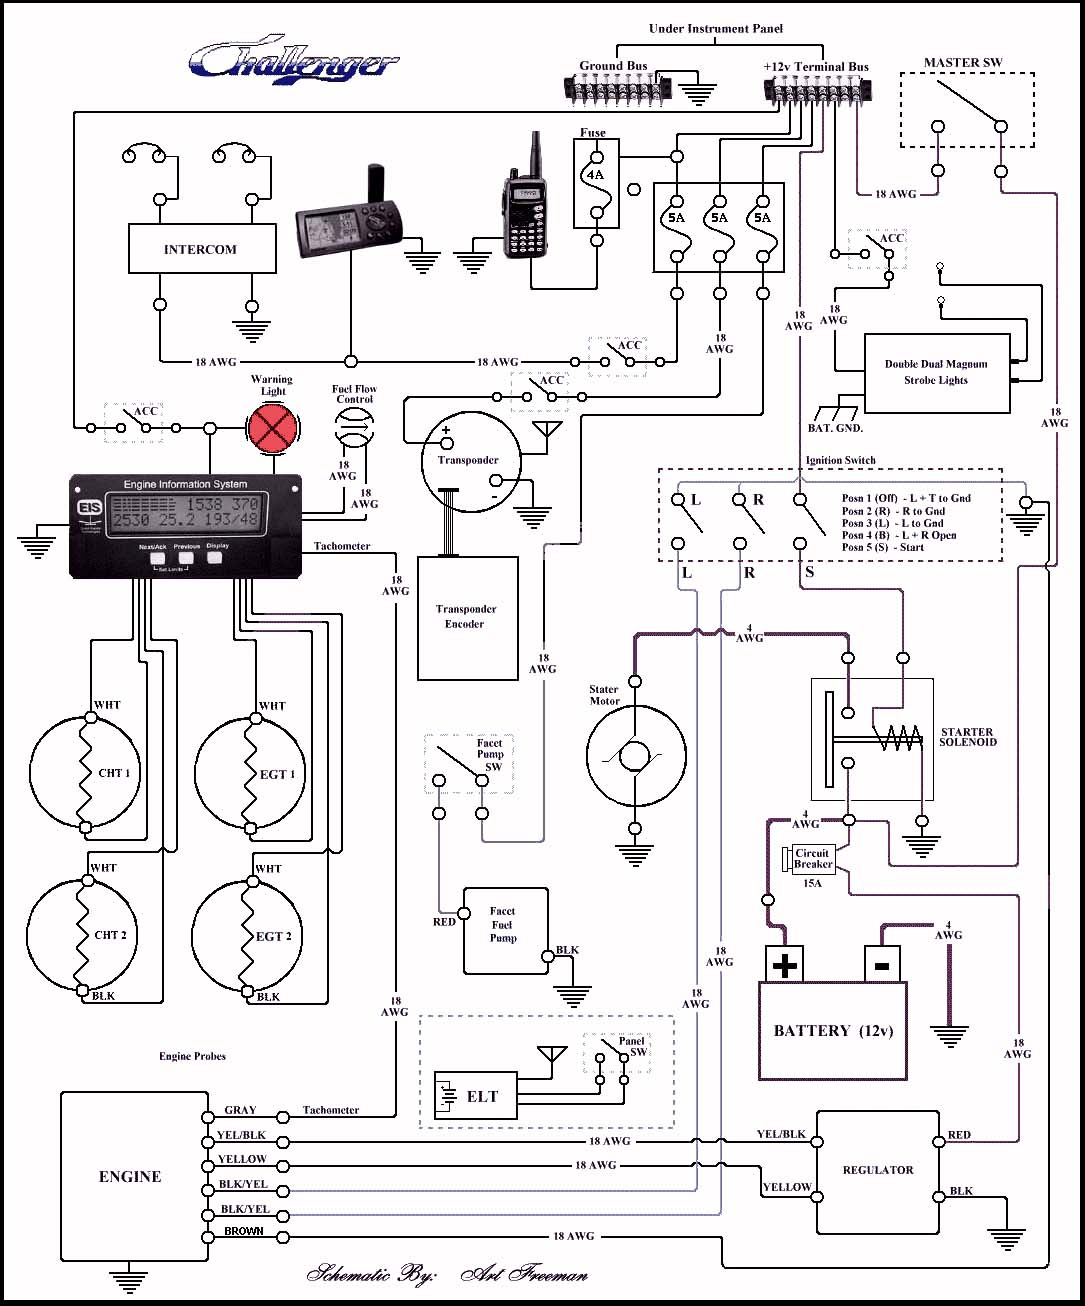 basic wiring of fuselage instruments and power source a lighted toggle switch wiring diagram